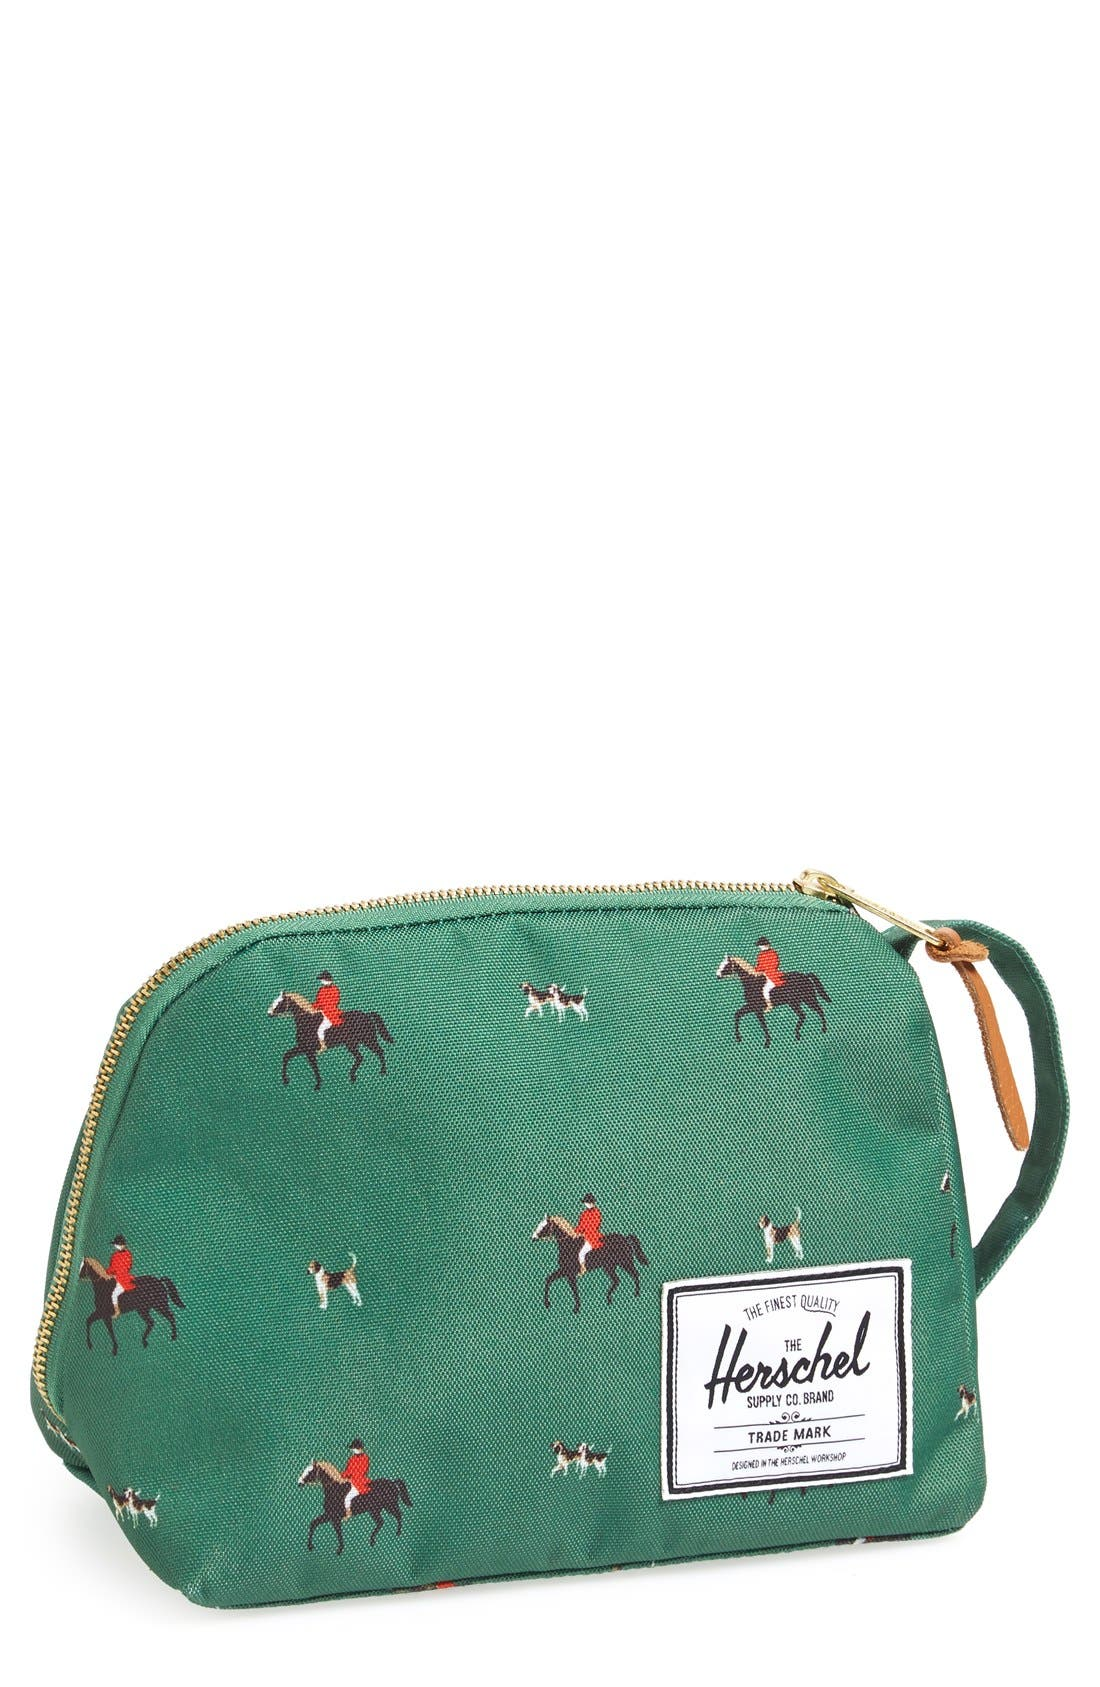 Main Image - Herschel Supply Co. 'Royal' Toiletry Bag